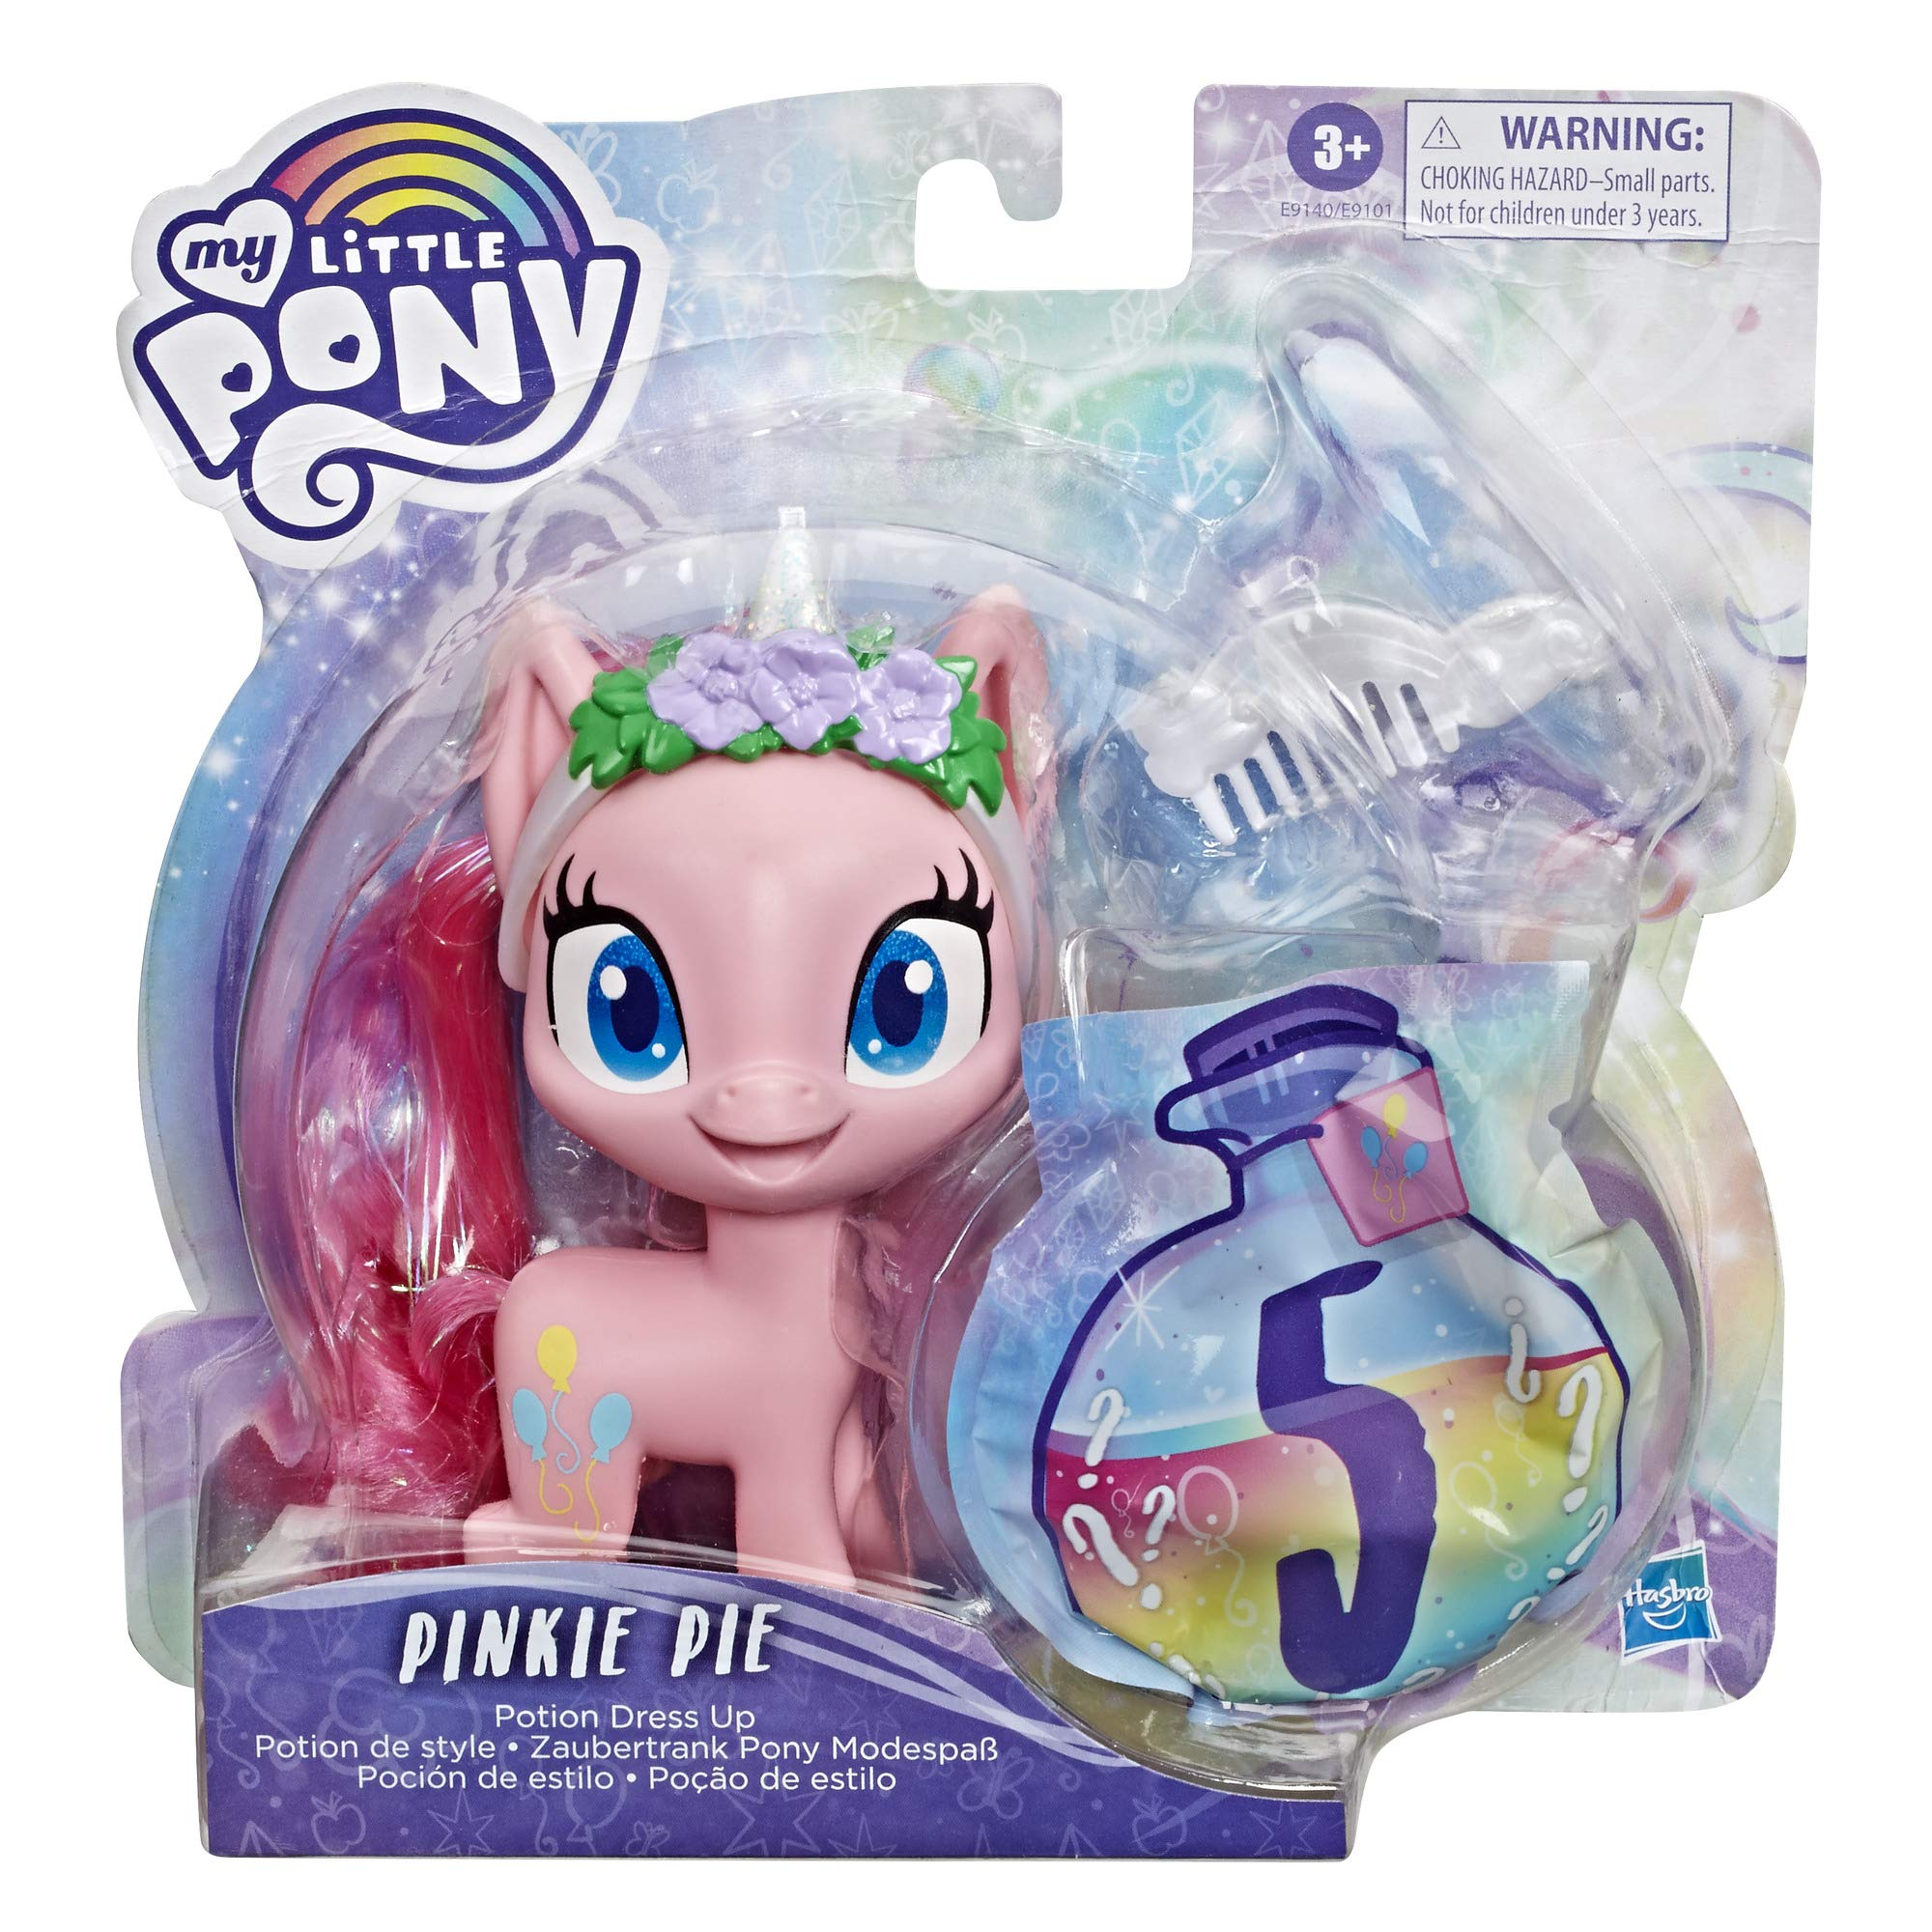 My Little Pony The Movie Collectible Dog tag Necklace and Trading Card Mystery Pack Bundle of 3